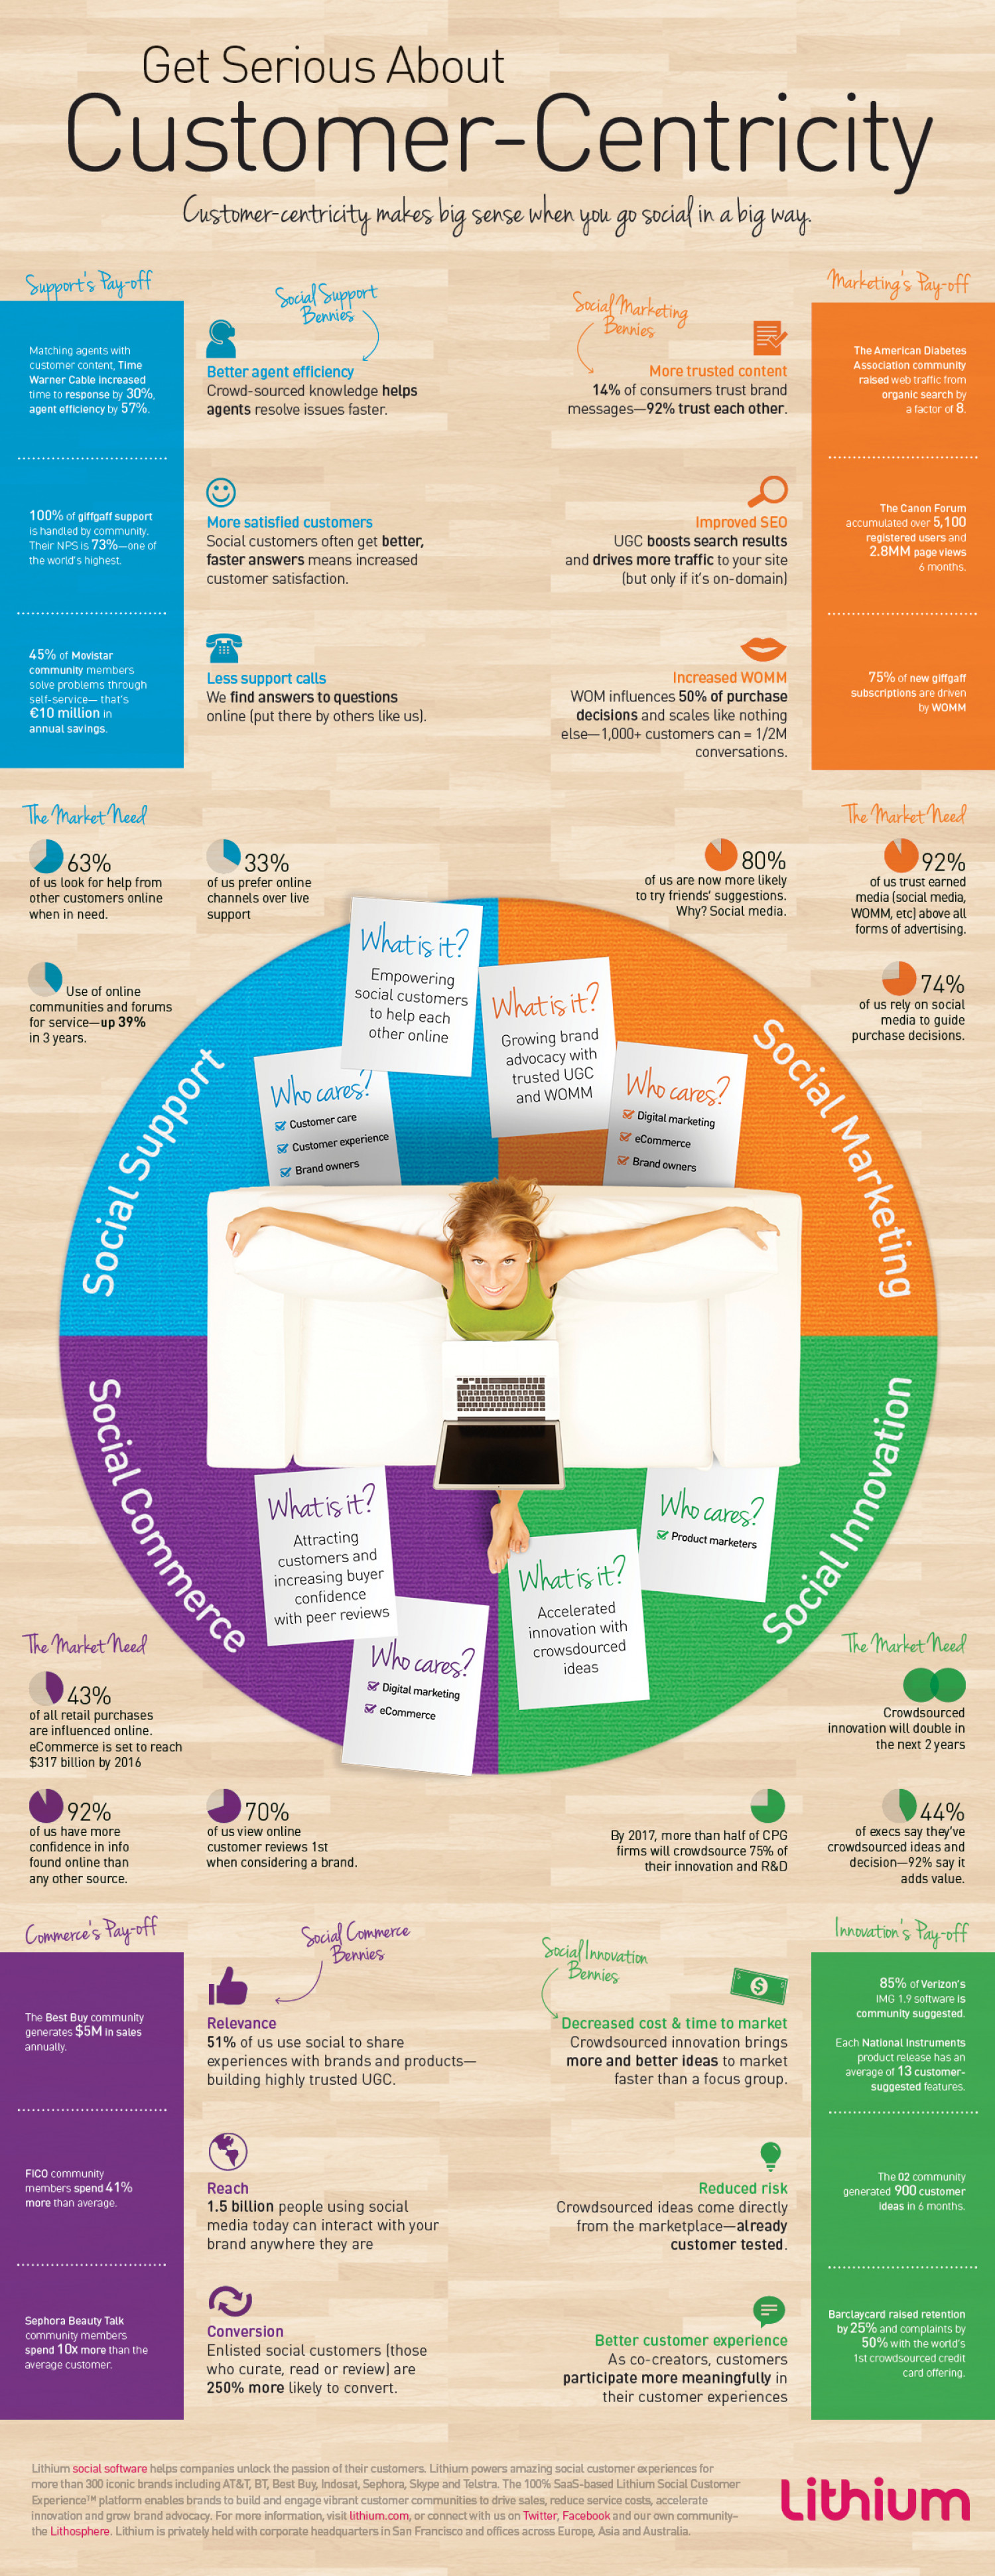 Get Serious About Customer-Centricity Infographic